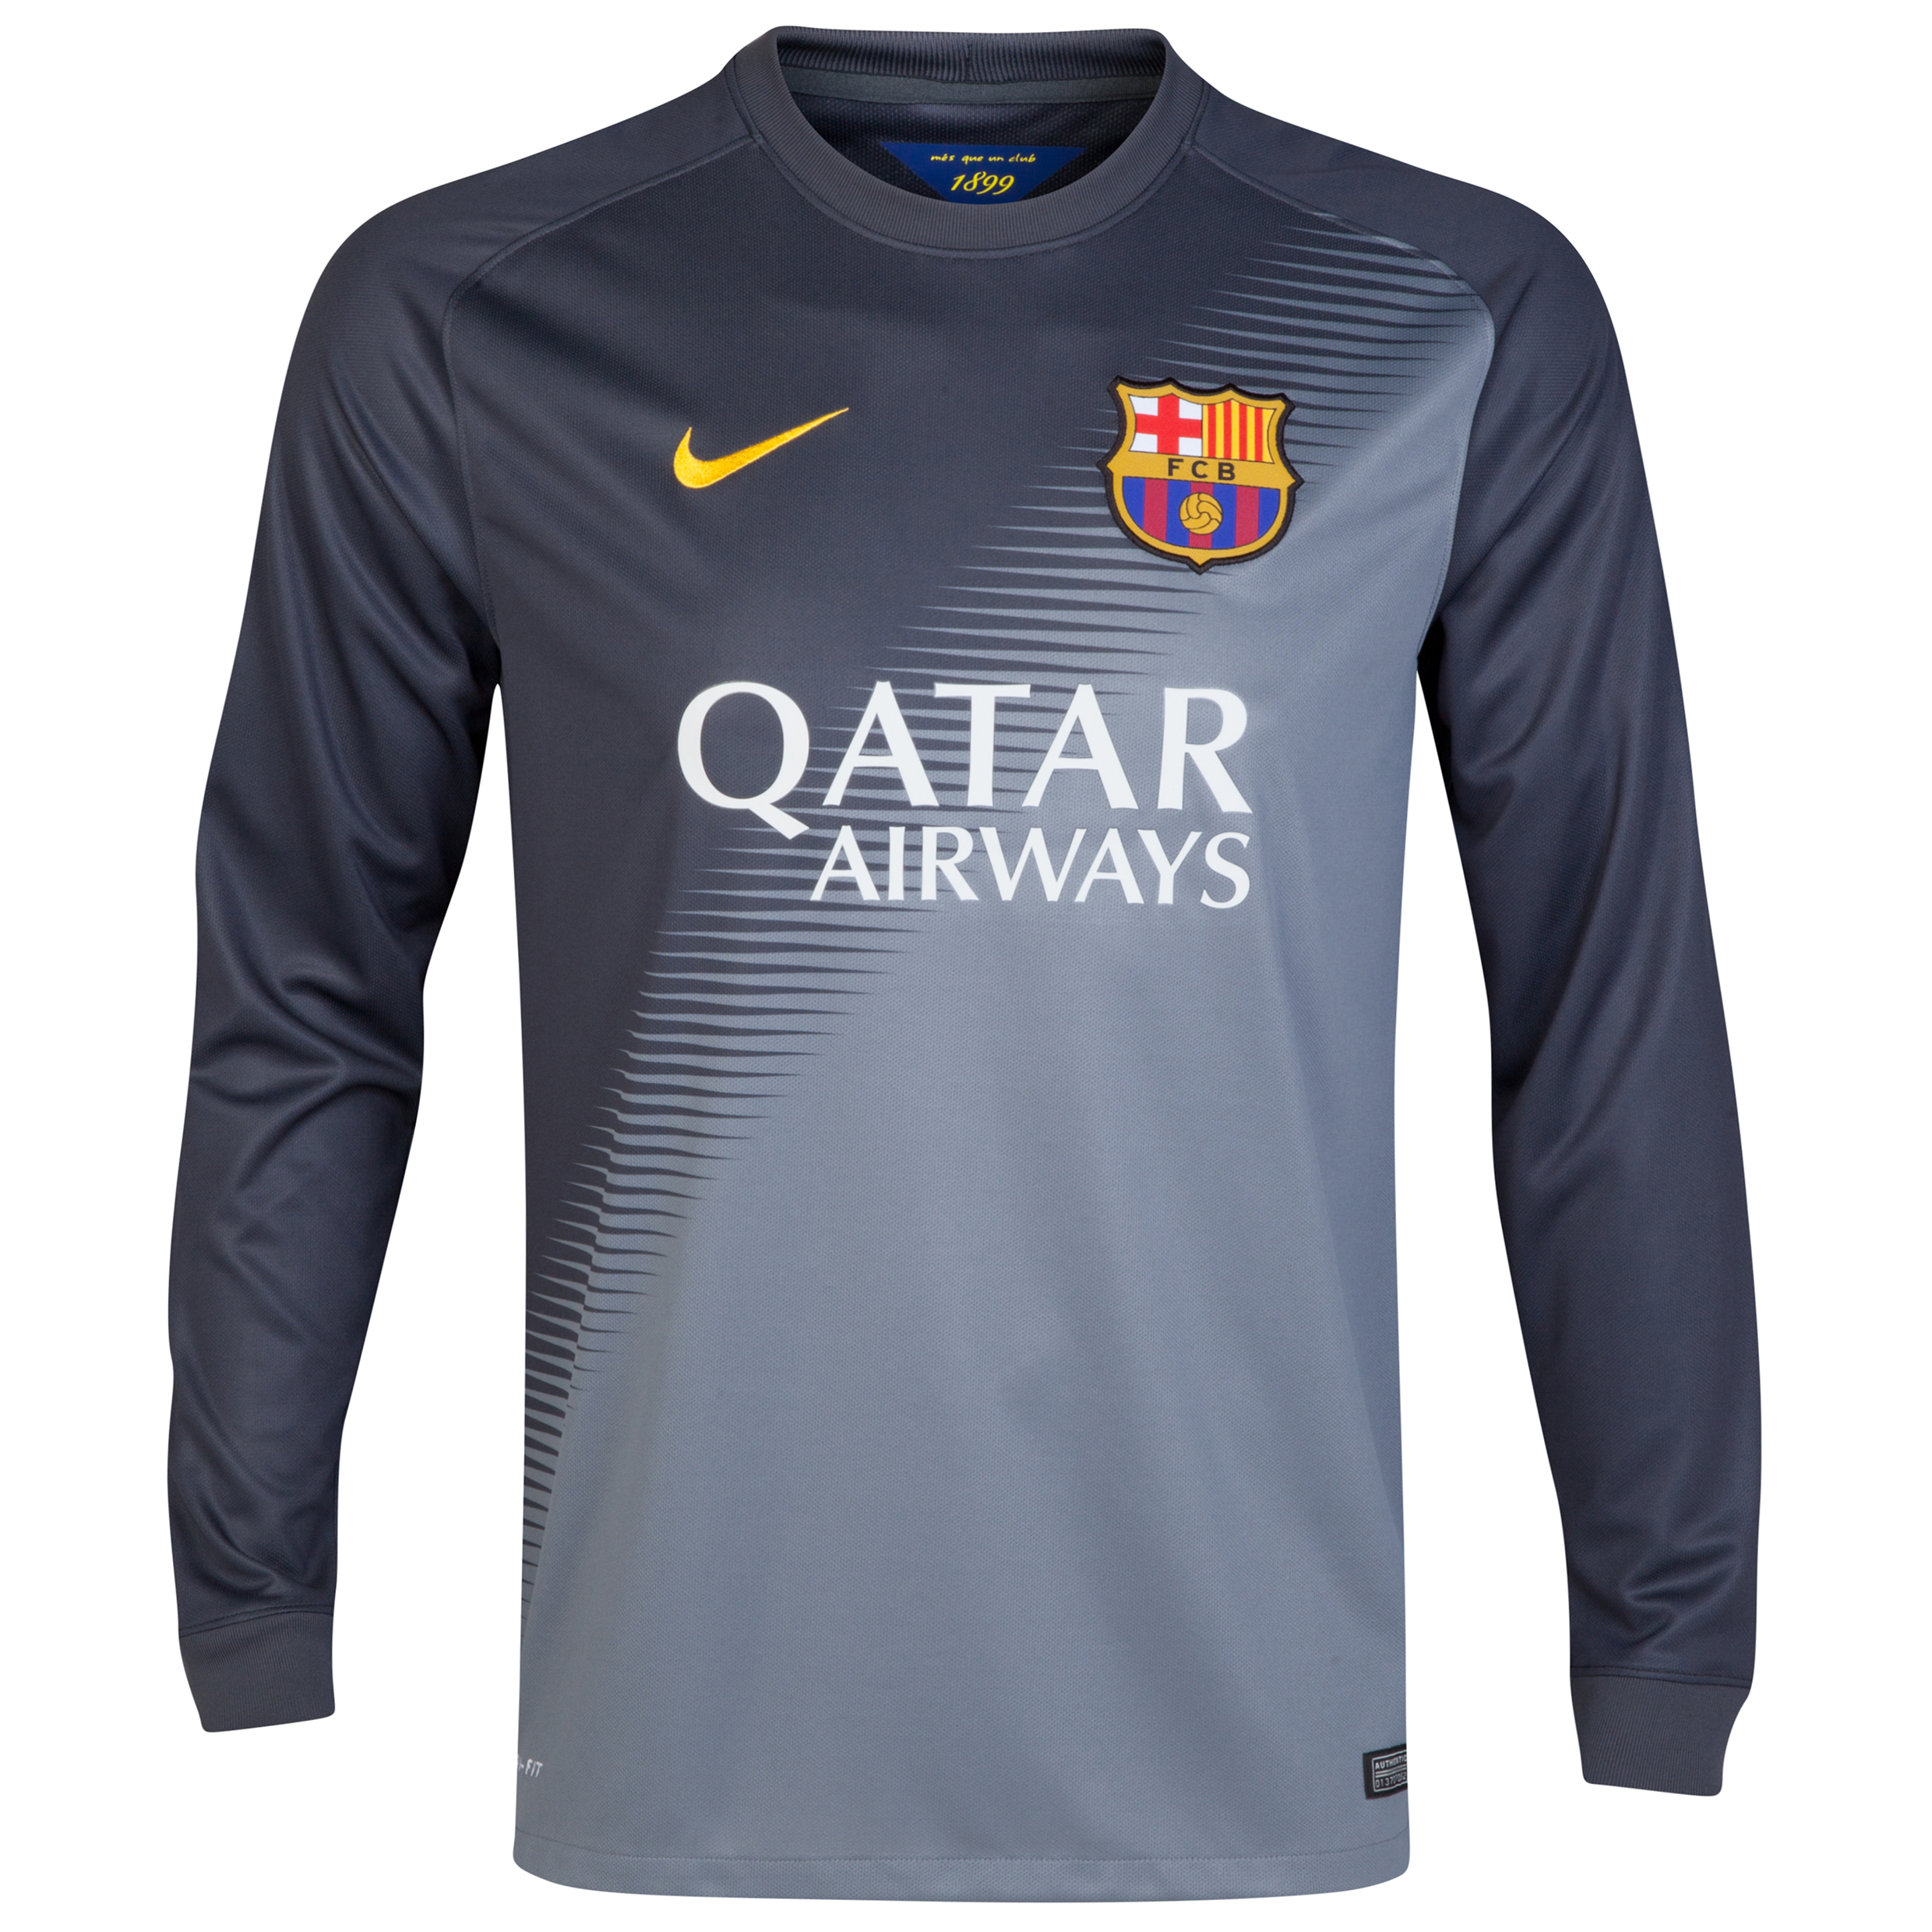 Barcelona Goalkeeper Shirt 2014/15 Black